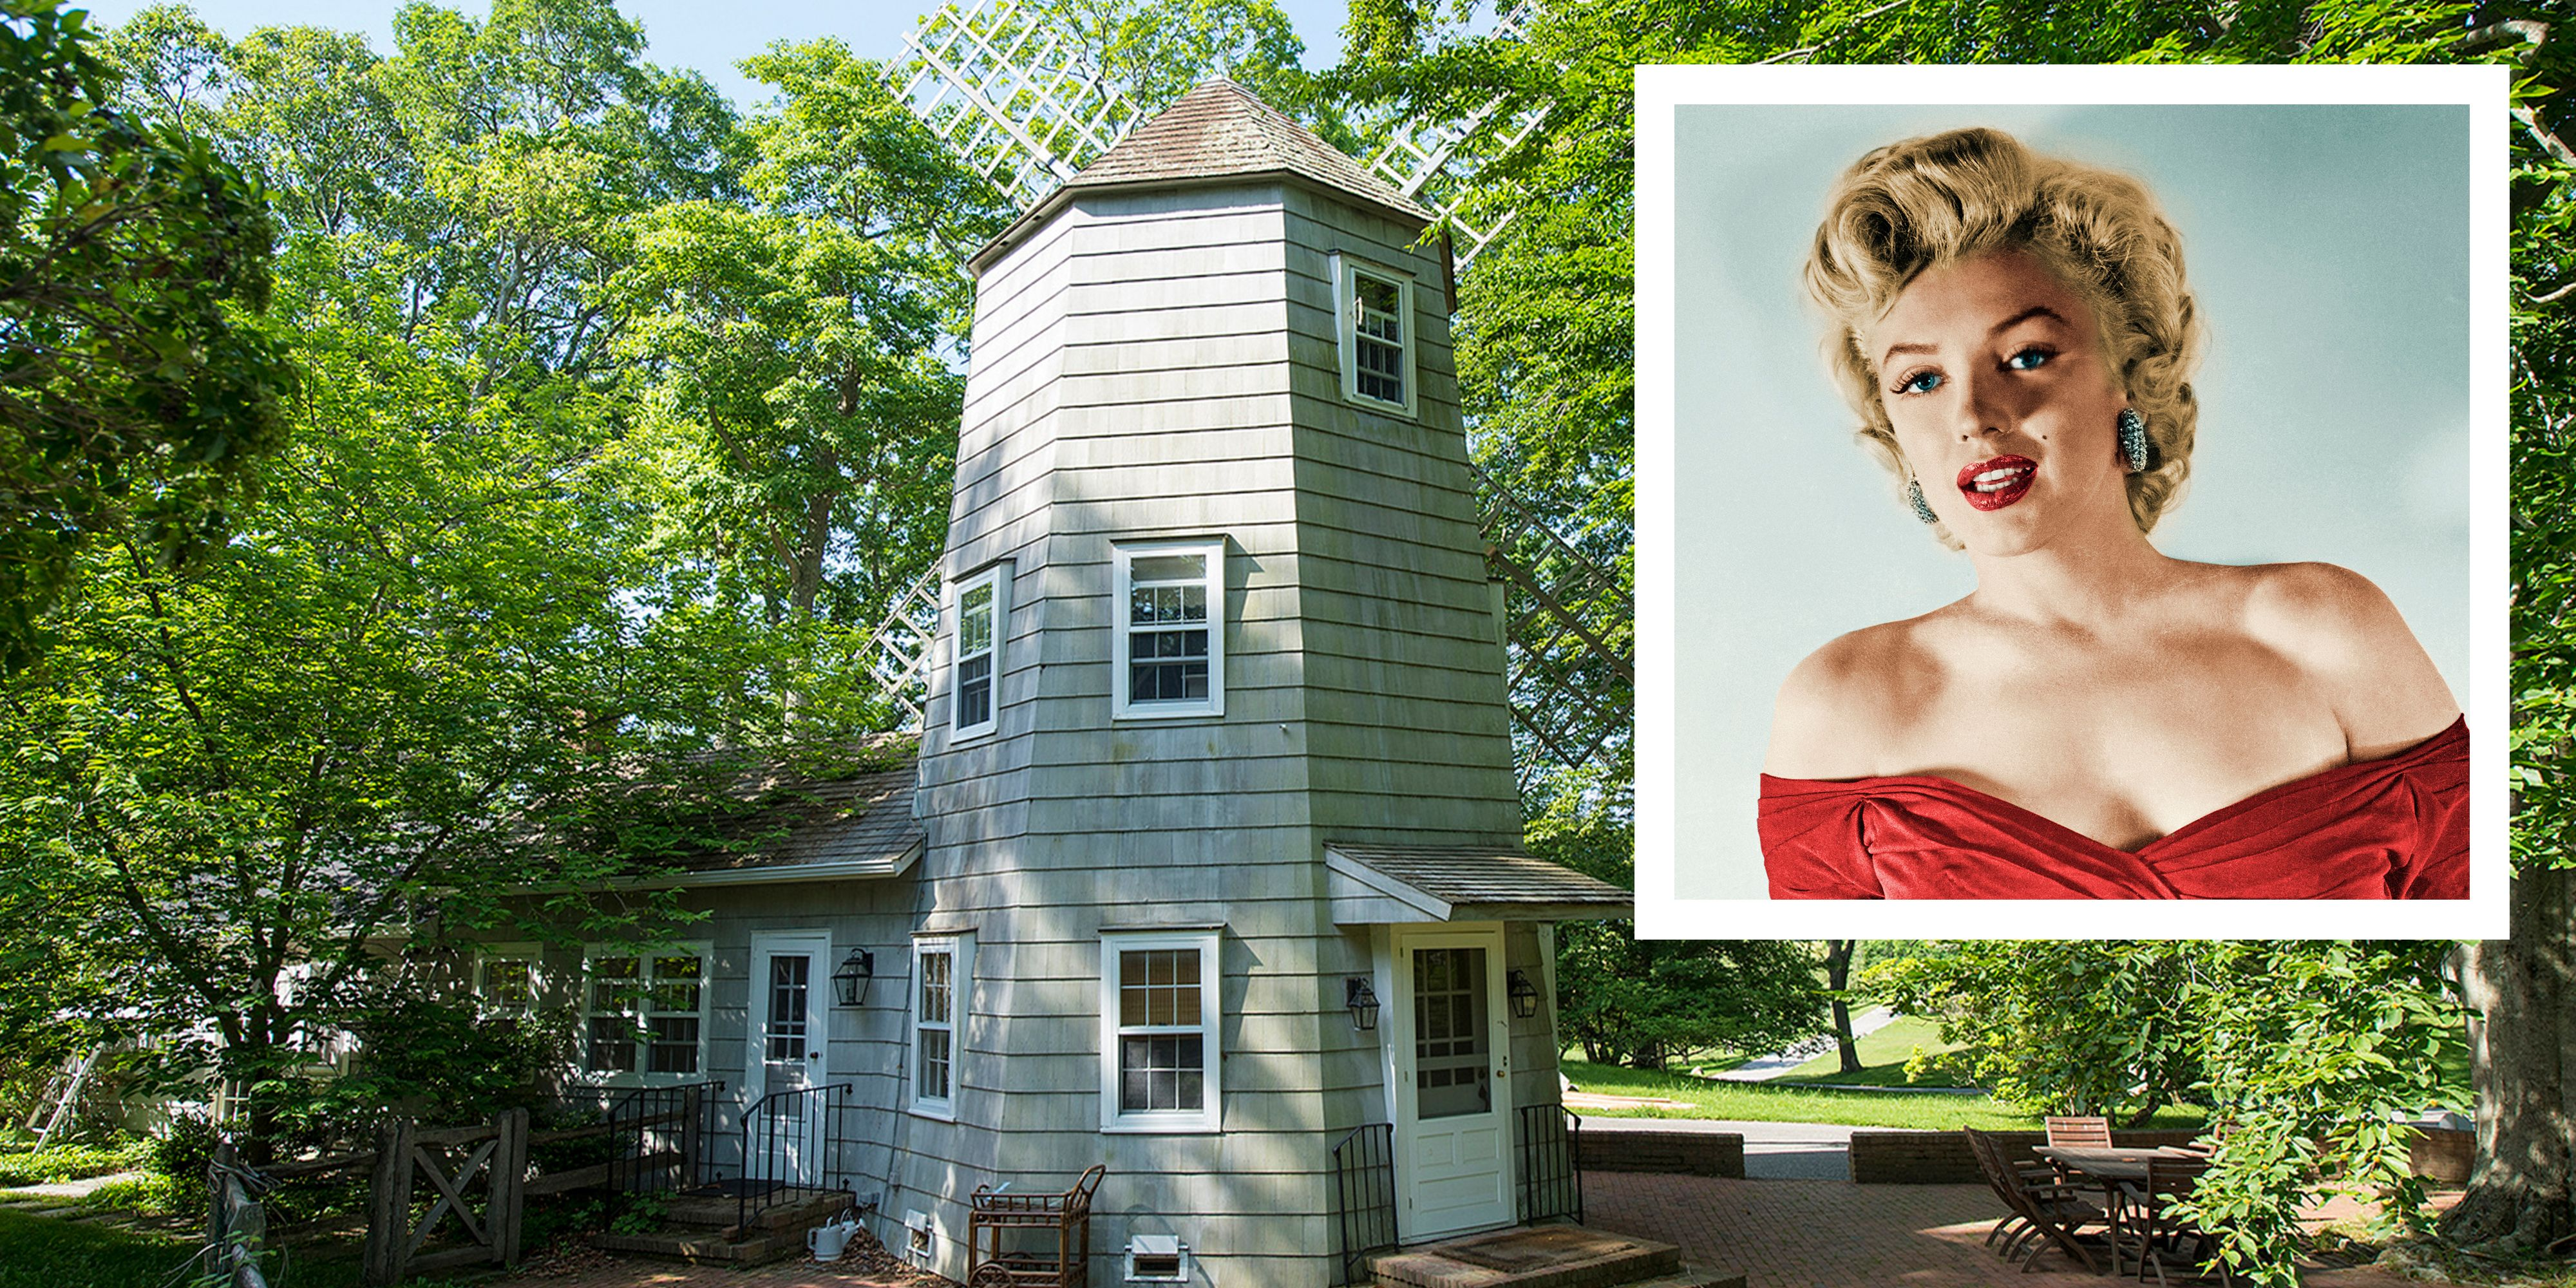 In New York, you can rent apartments Marilyn Monroe